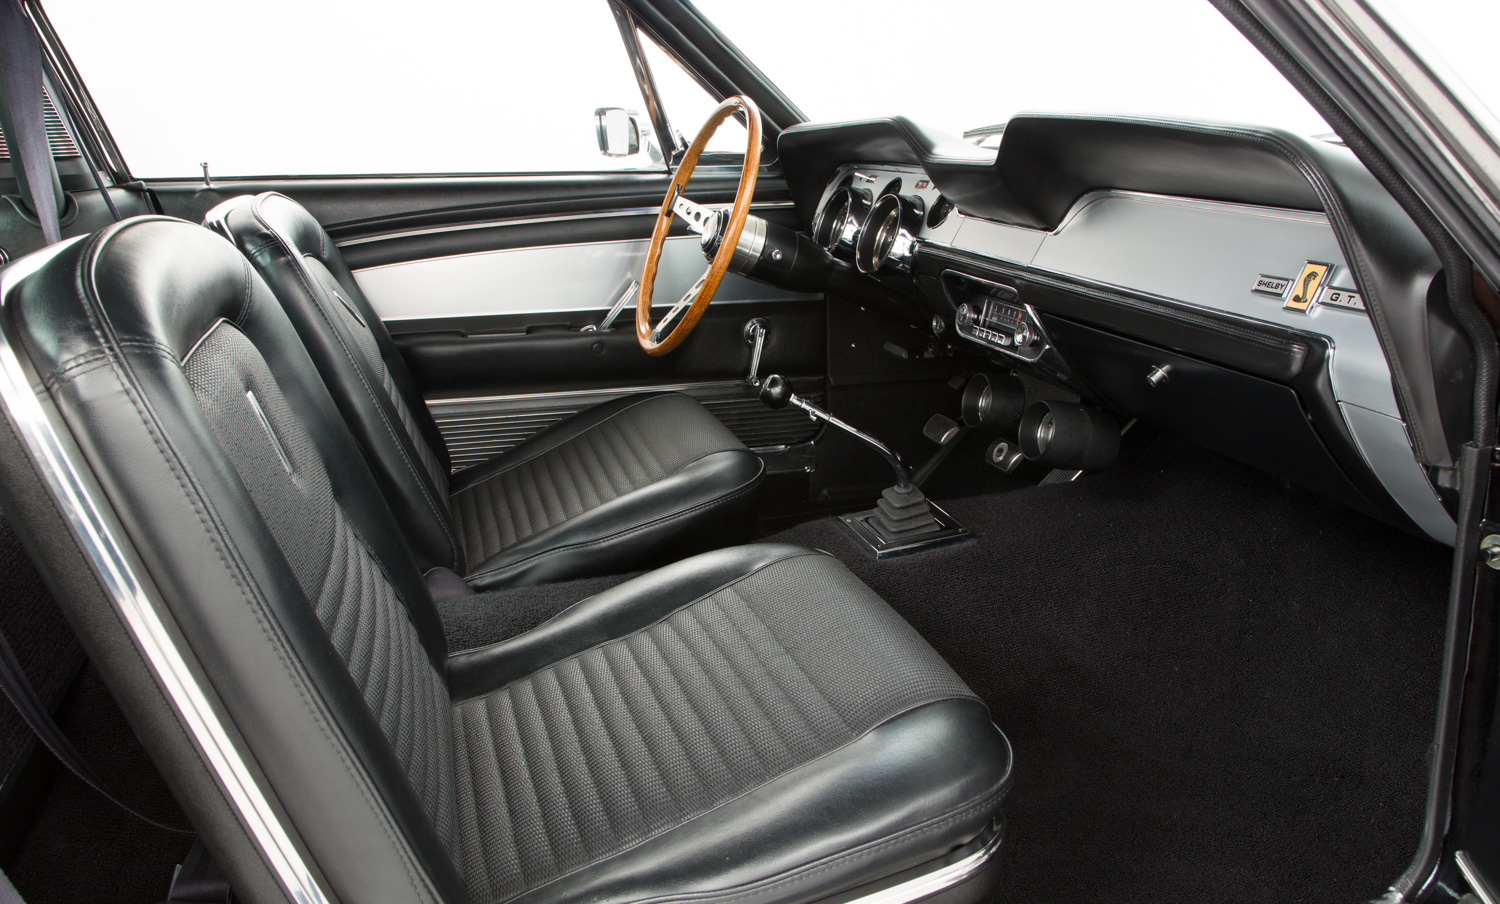 Shelby mustang gt500 for sale interior 4